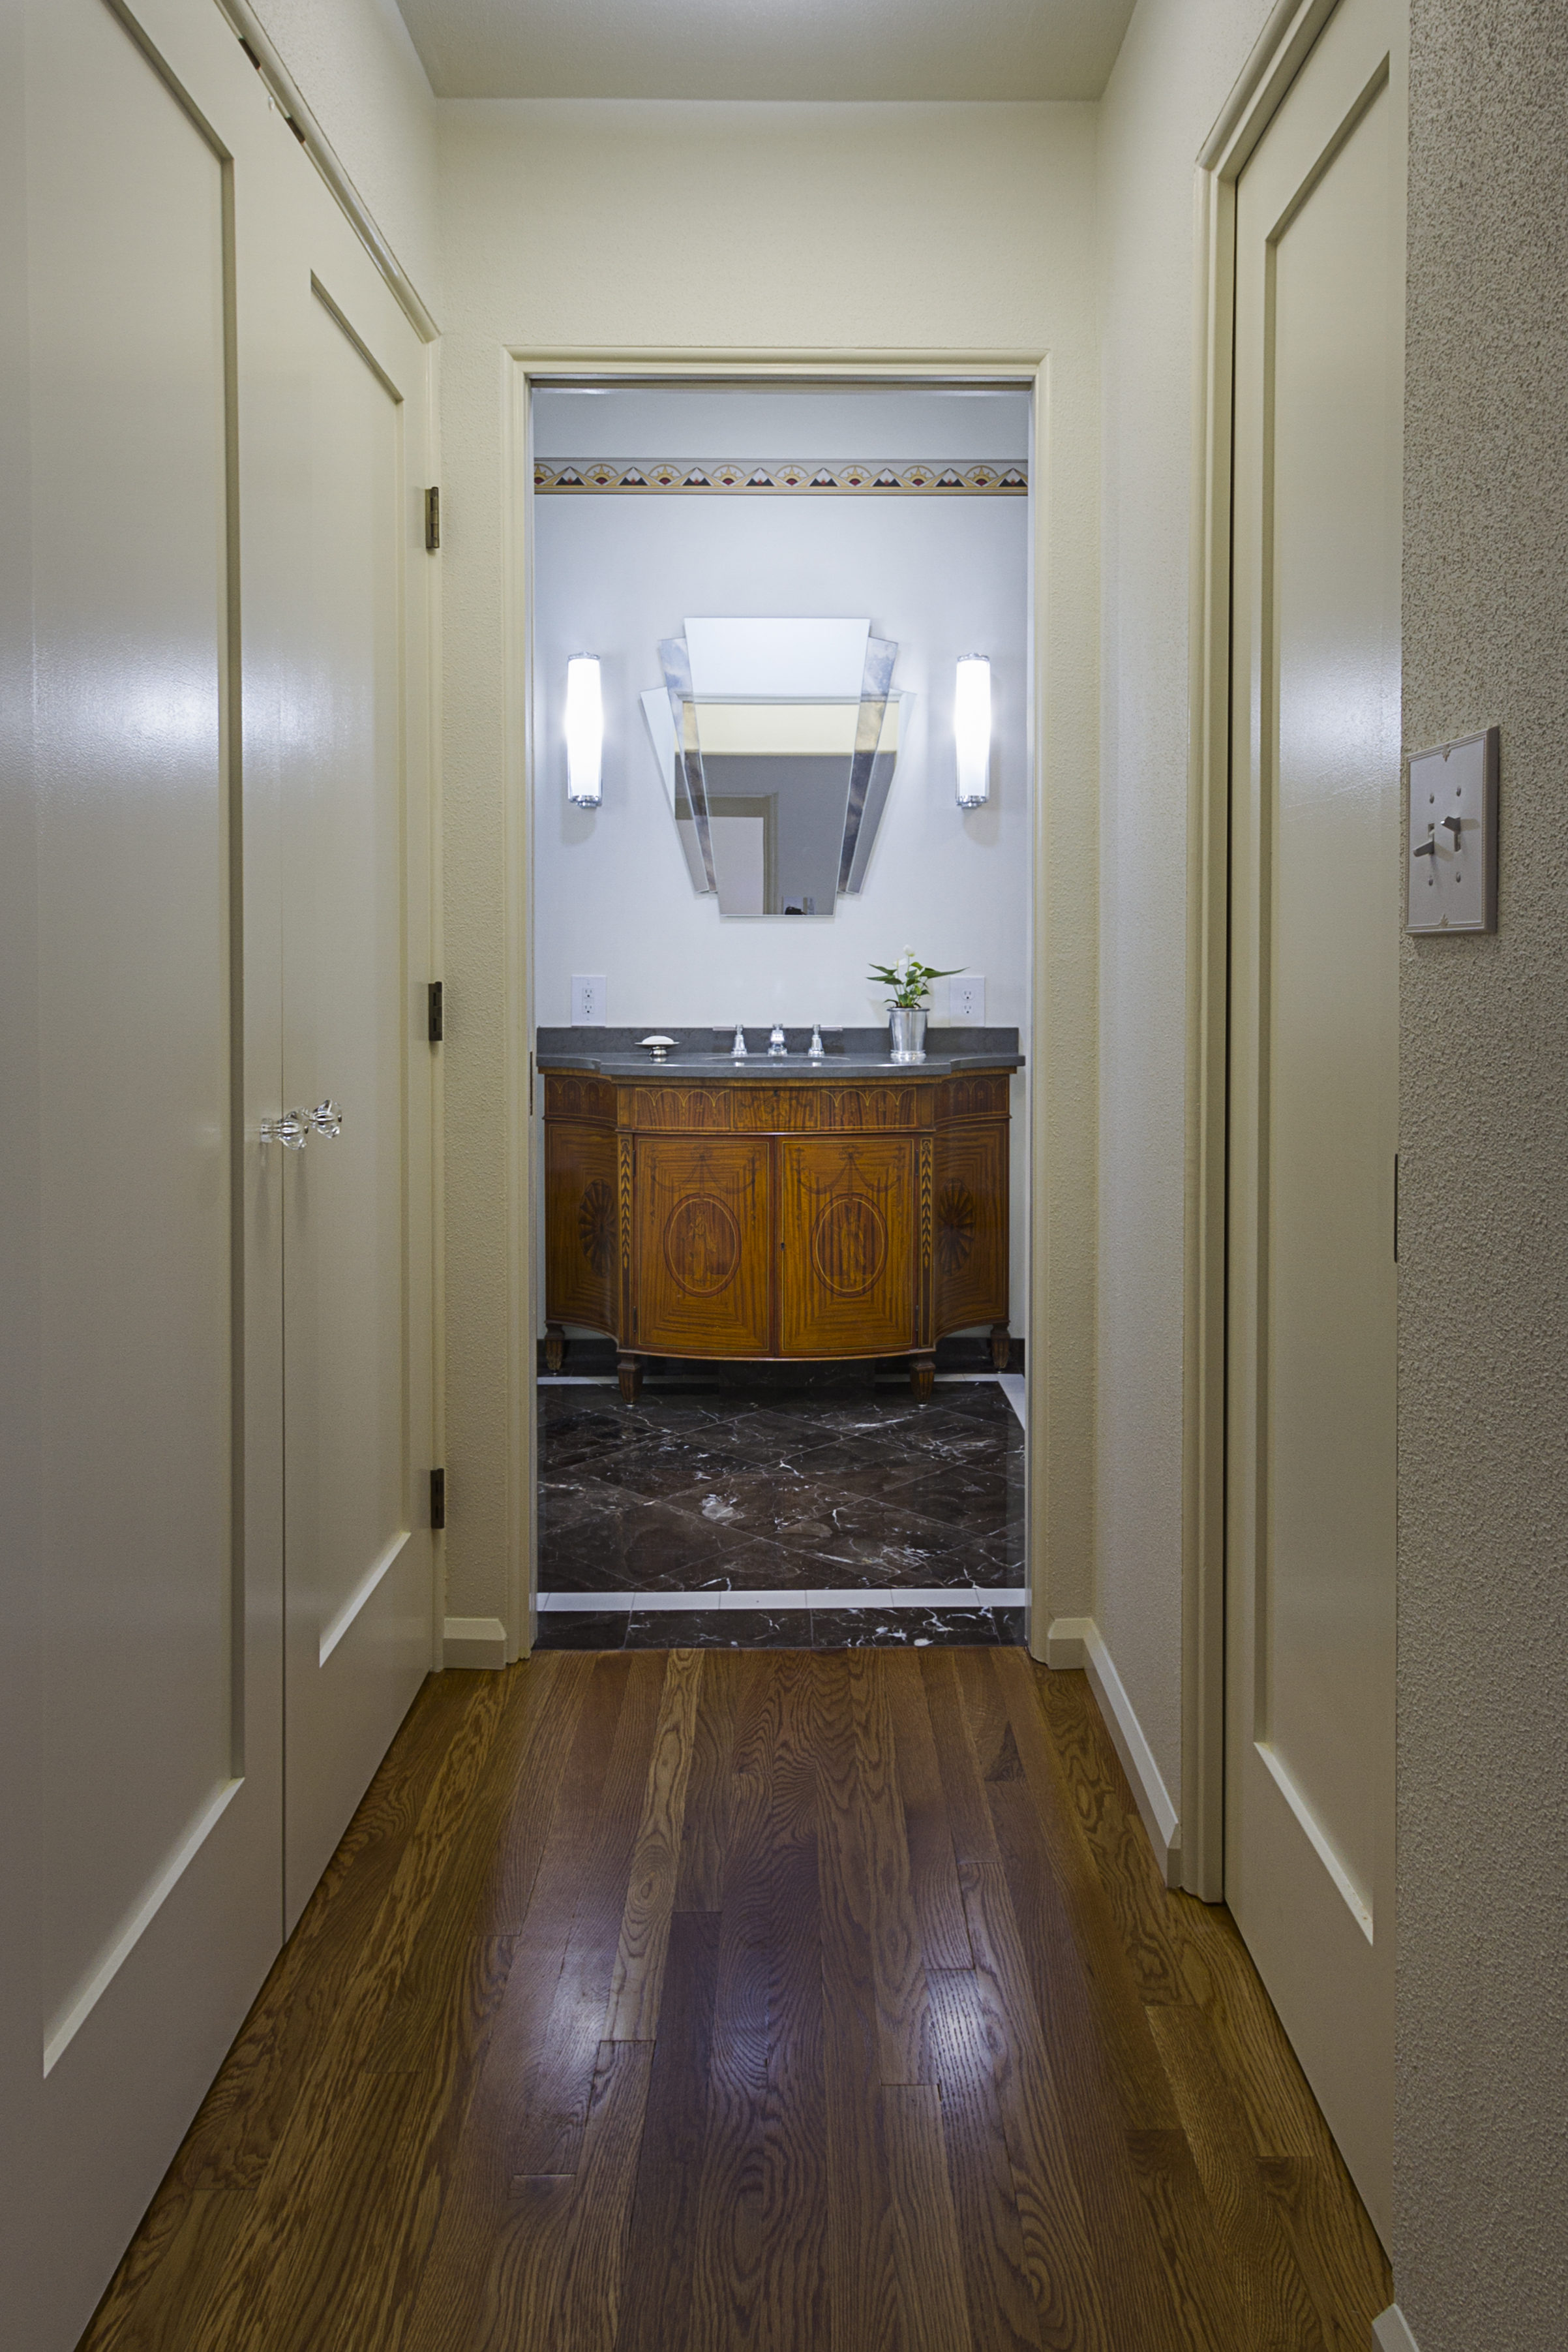 The Master Bathroom is located at the end of this short Hallway, off the  Master Bedroom. To the left is the Laundry Closet, to the right is the  Master Closet.